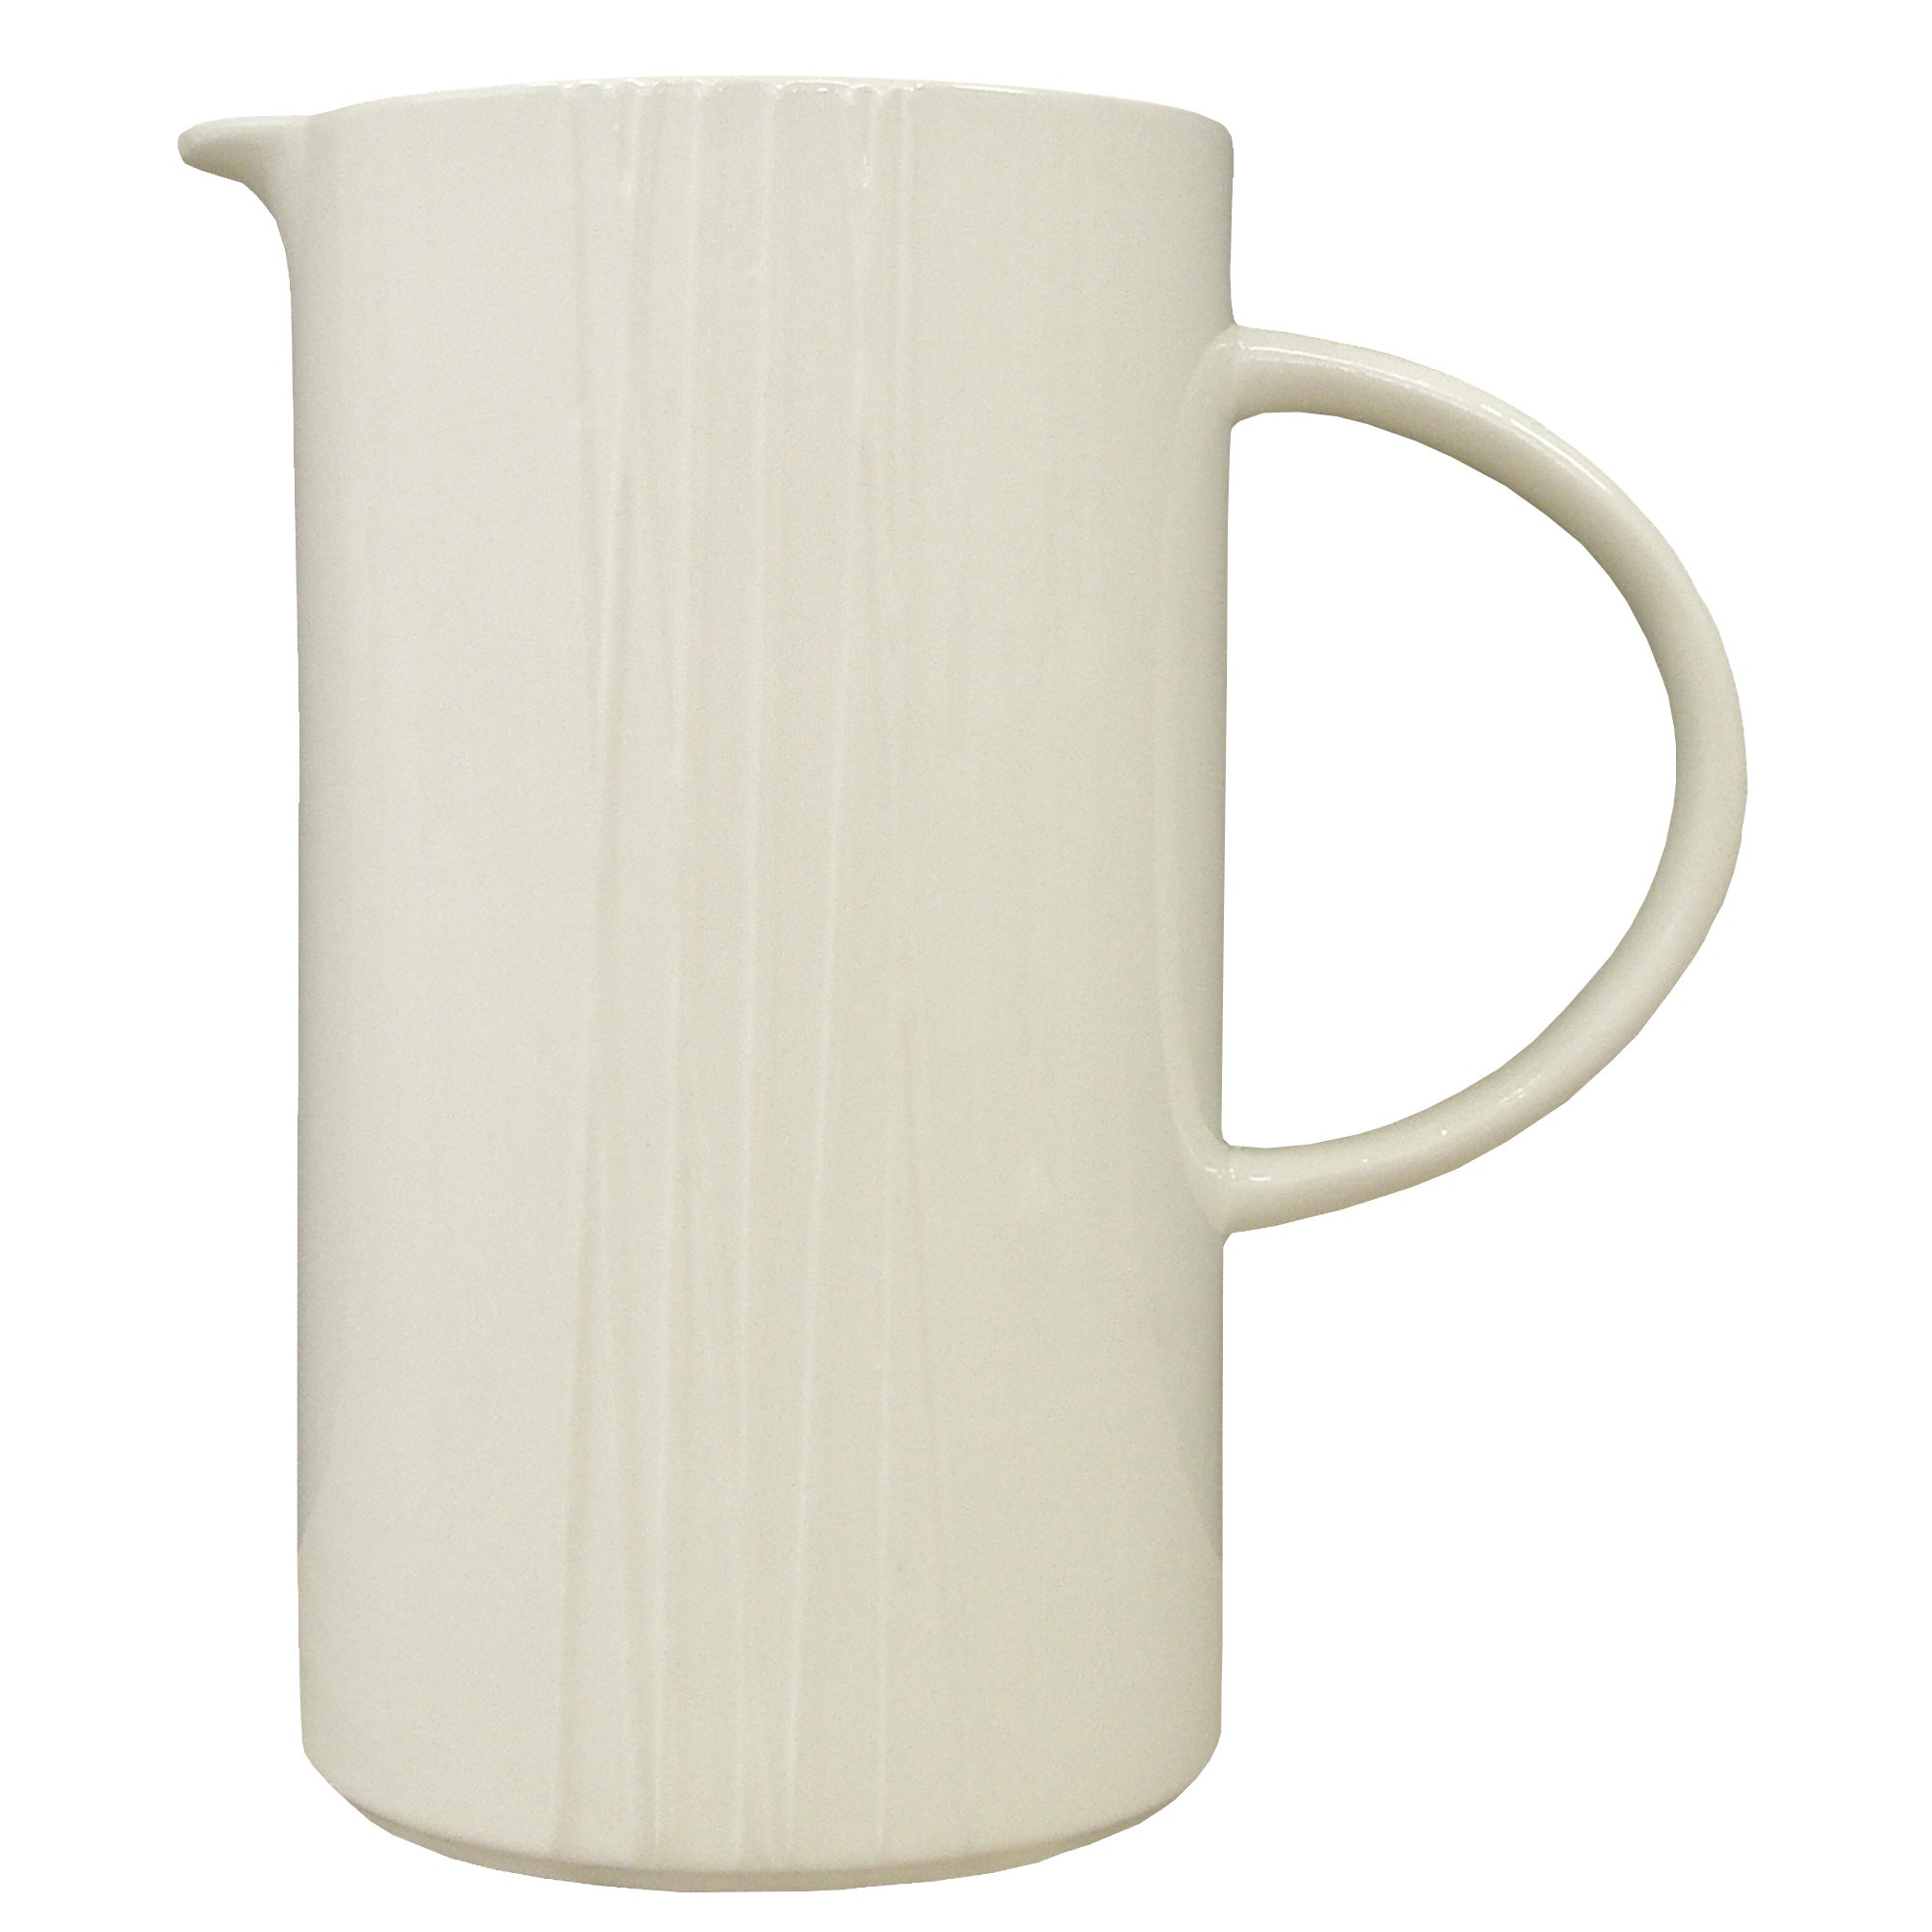 Barley Collection Jug